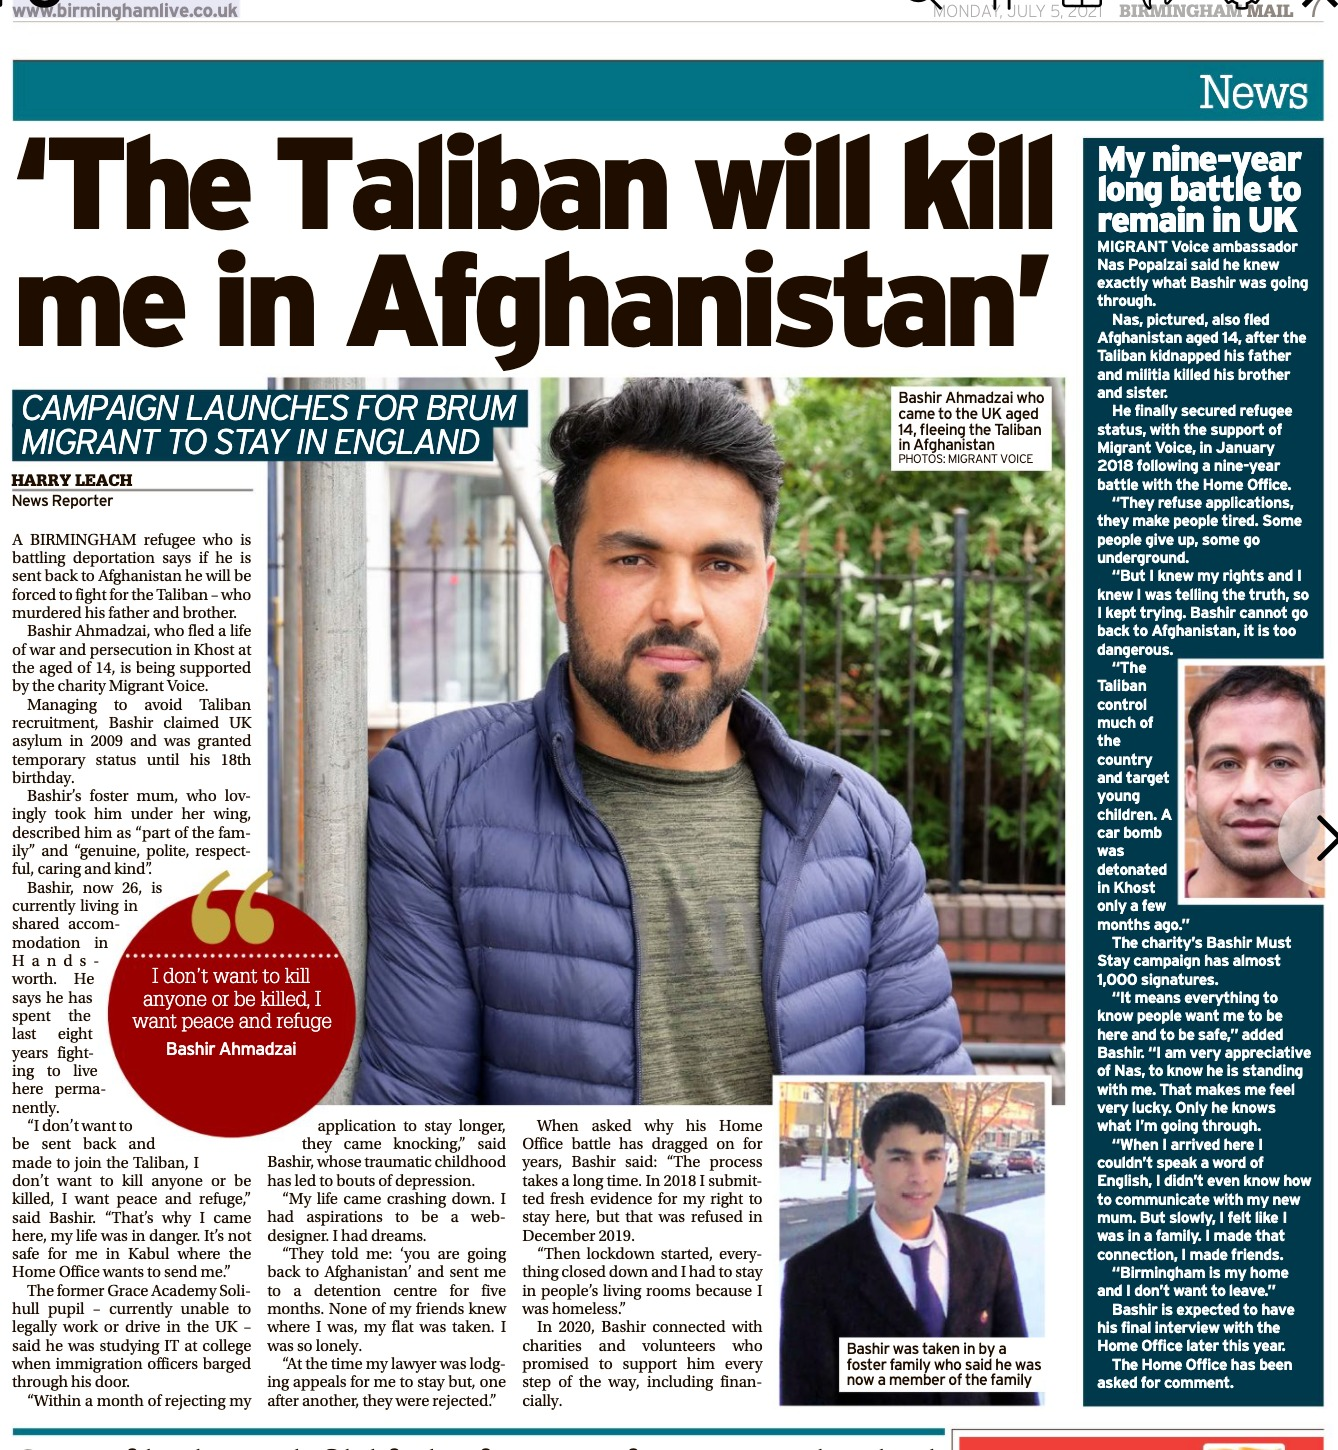 birmingham mail covers bashirs campaign after meet the editors